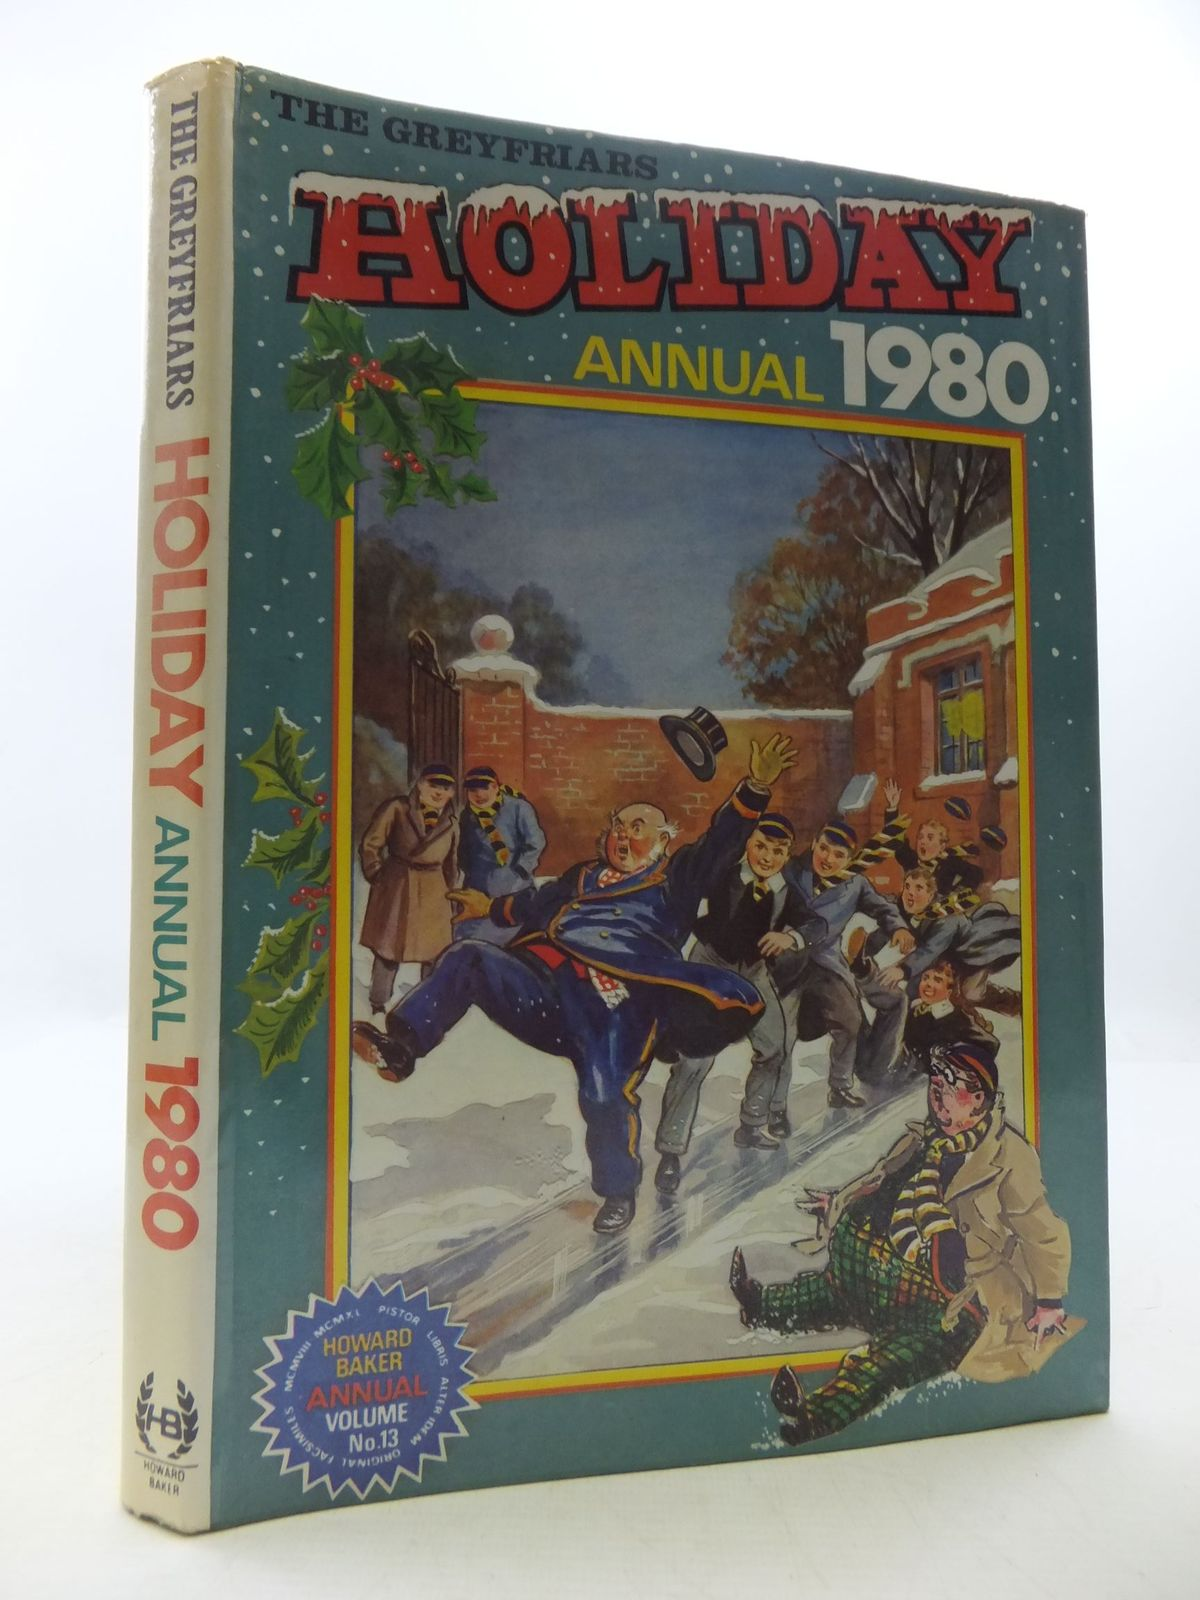 Photo of THE GREYFRIARS HOLIDAY ANNUAL 1980